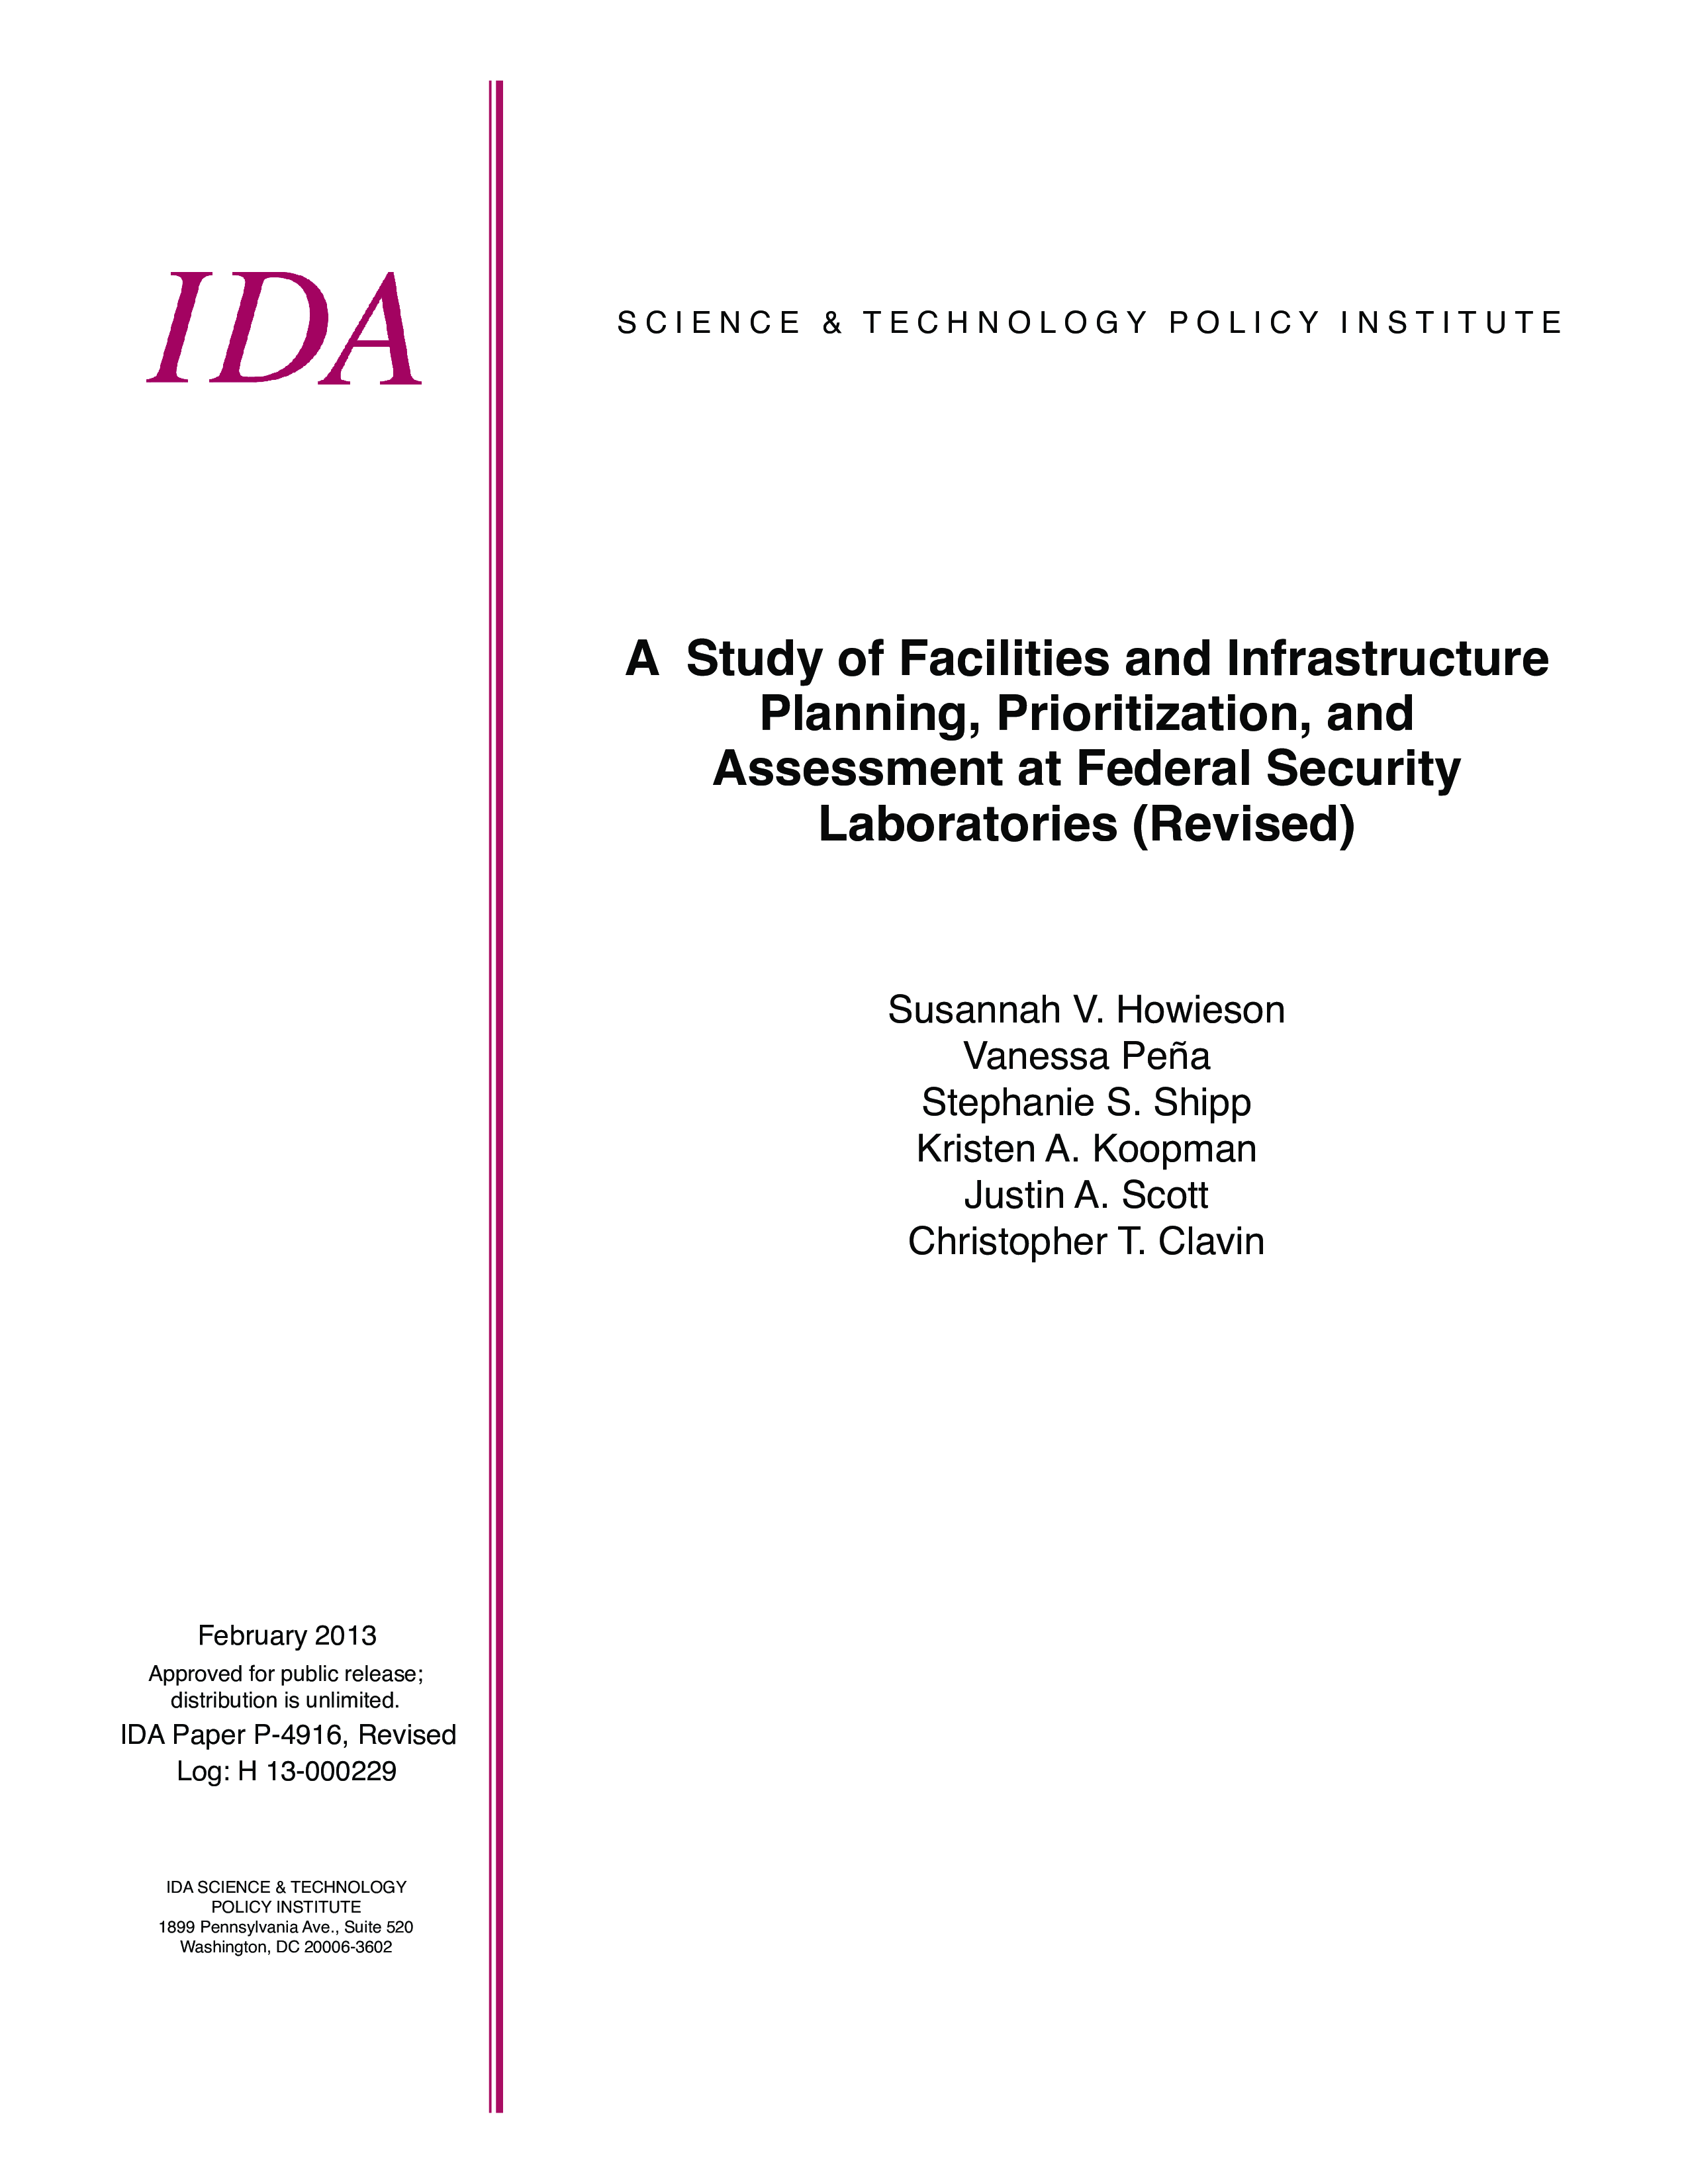 A Study of Facilities and Infrastructure Planning, Prioritization, and Assessment at Federal Security Laboratories (Revised)